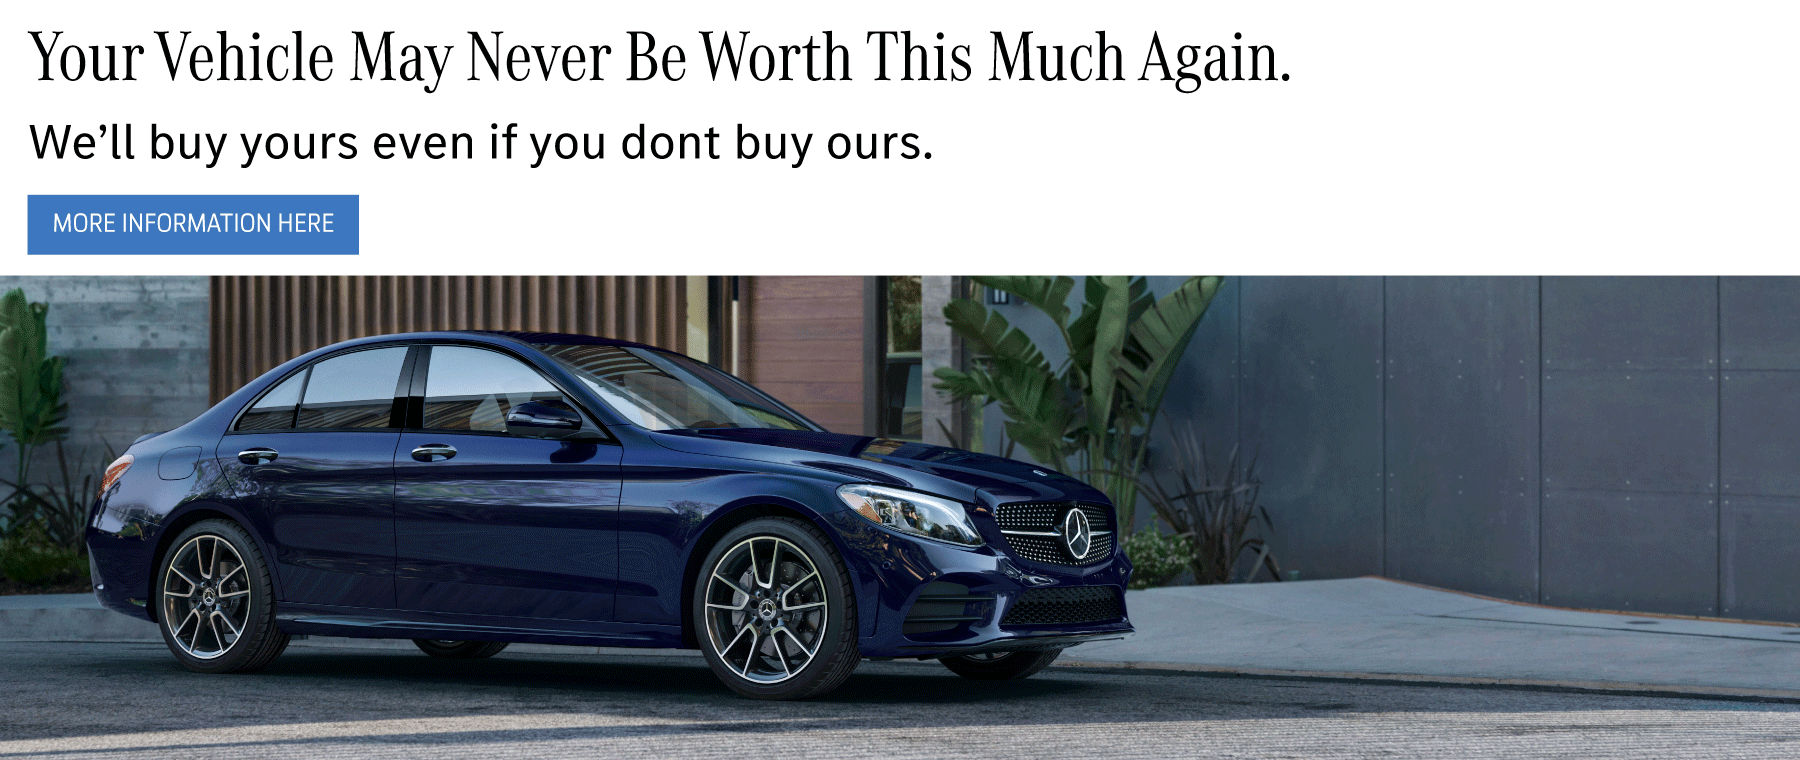 Your Vehicle May Never Be Worth This Much Again